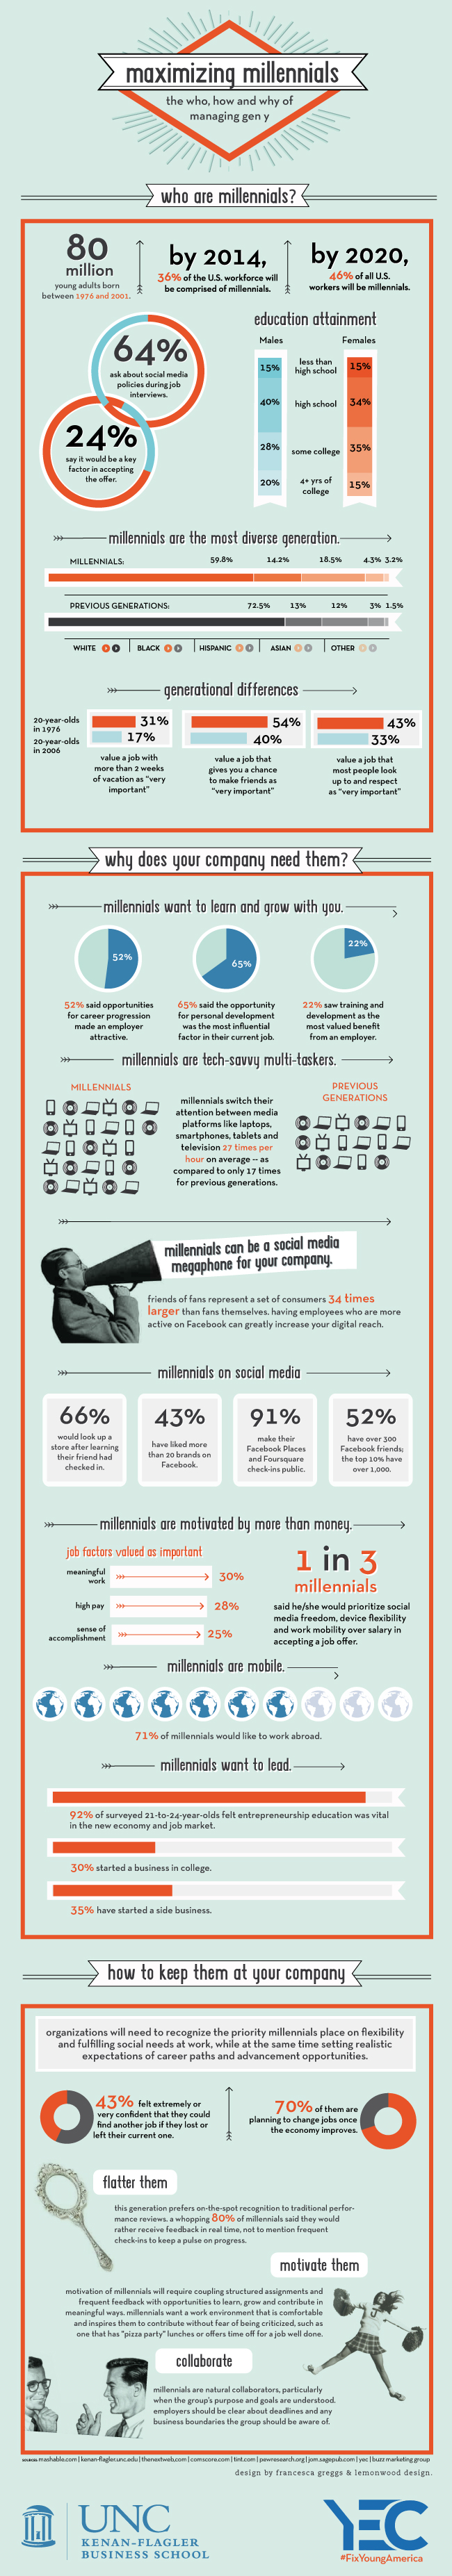 http://blogs-images.forbes.com/mattmiller/files/2012/07/geny-in-the-workplace-infographic-mba-at-unc.jpg